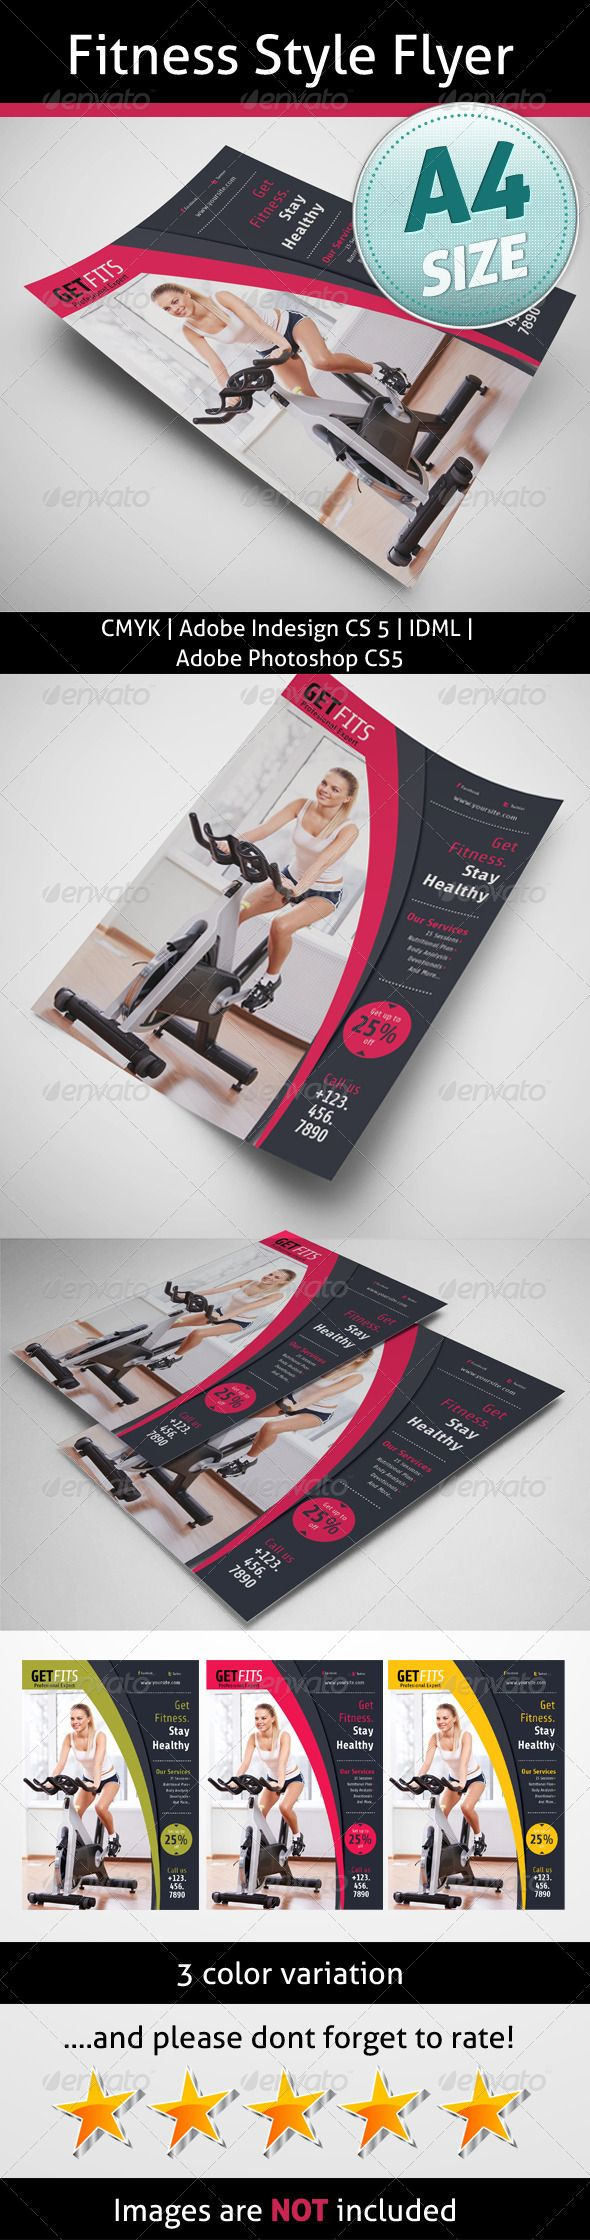 Poster design using photoshop cs5 - Fitness Style Flyer Graphicriver A4 8 2677 11 6929 Bleed 5 Mm Indesign Cs5 Photoshop Cs5